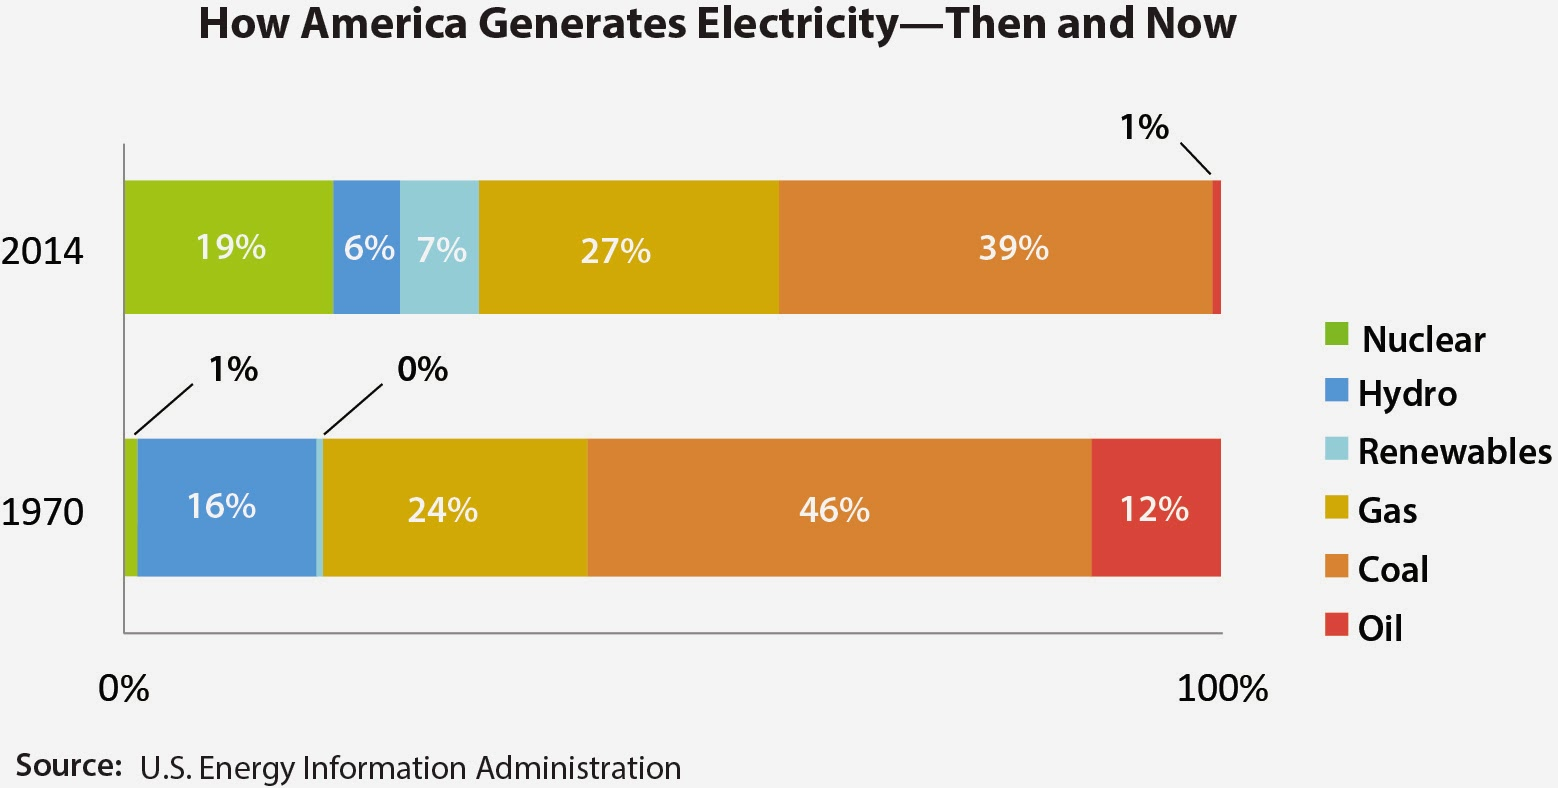 How America Generates Electricity - 1970 and 2014